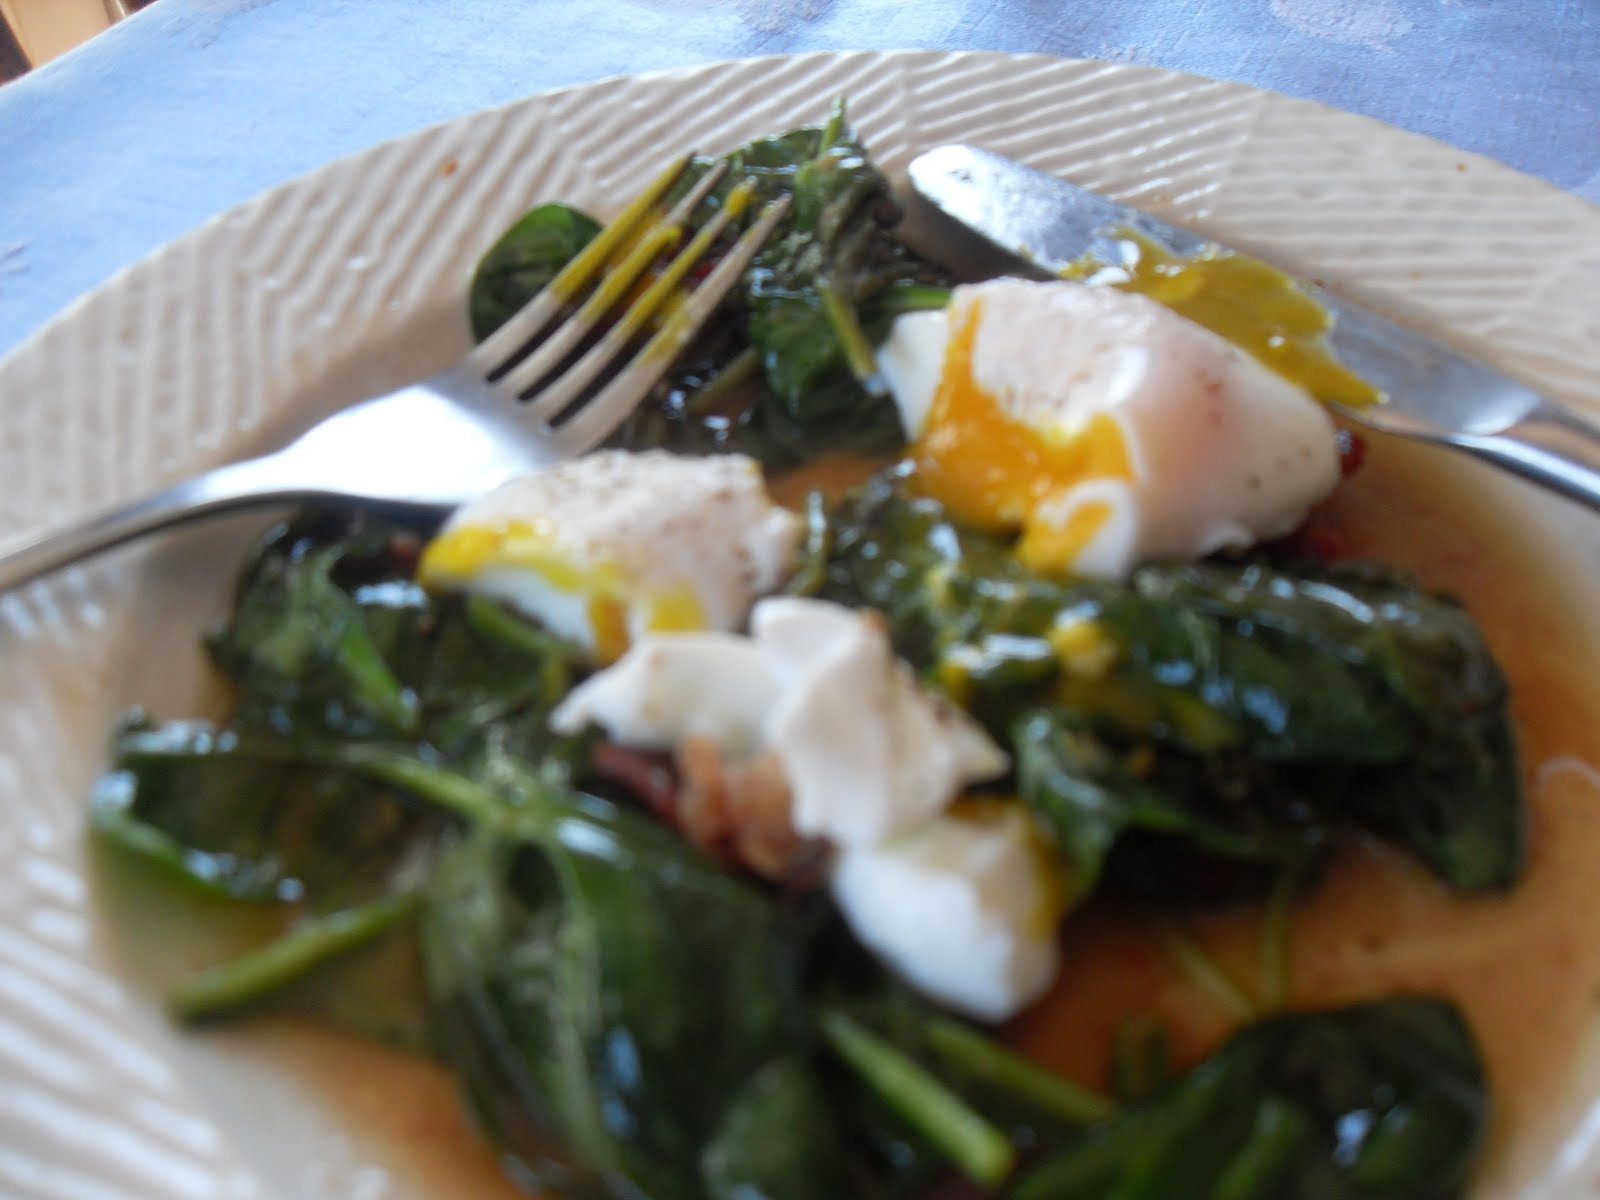 ... and Crunchiness with Christy: Poached Eggs with Spinach Salad